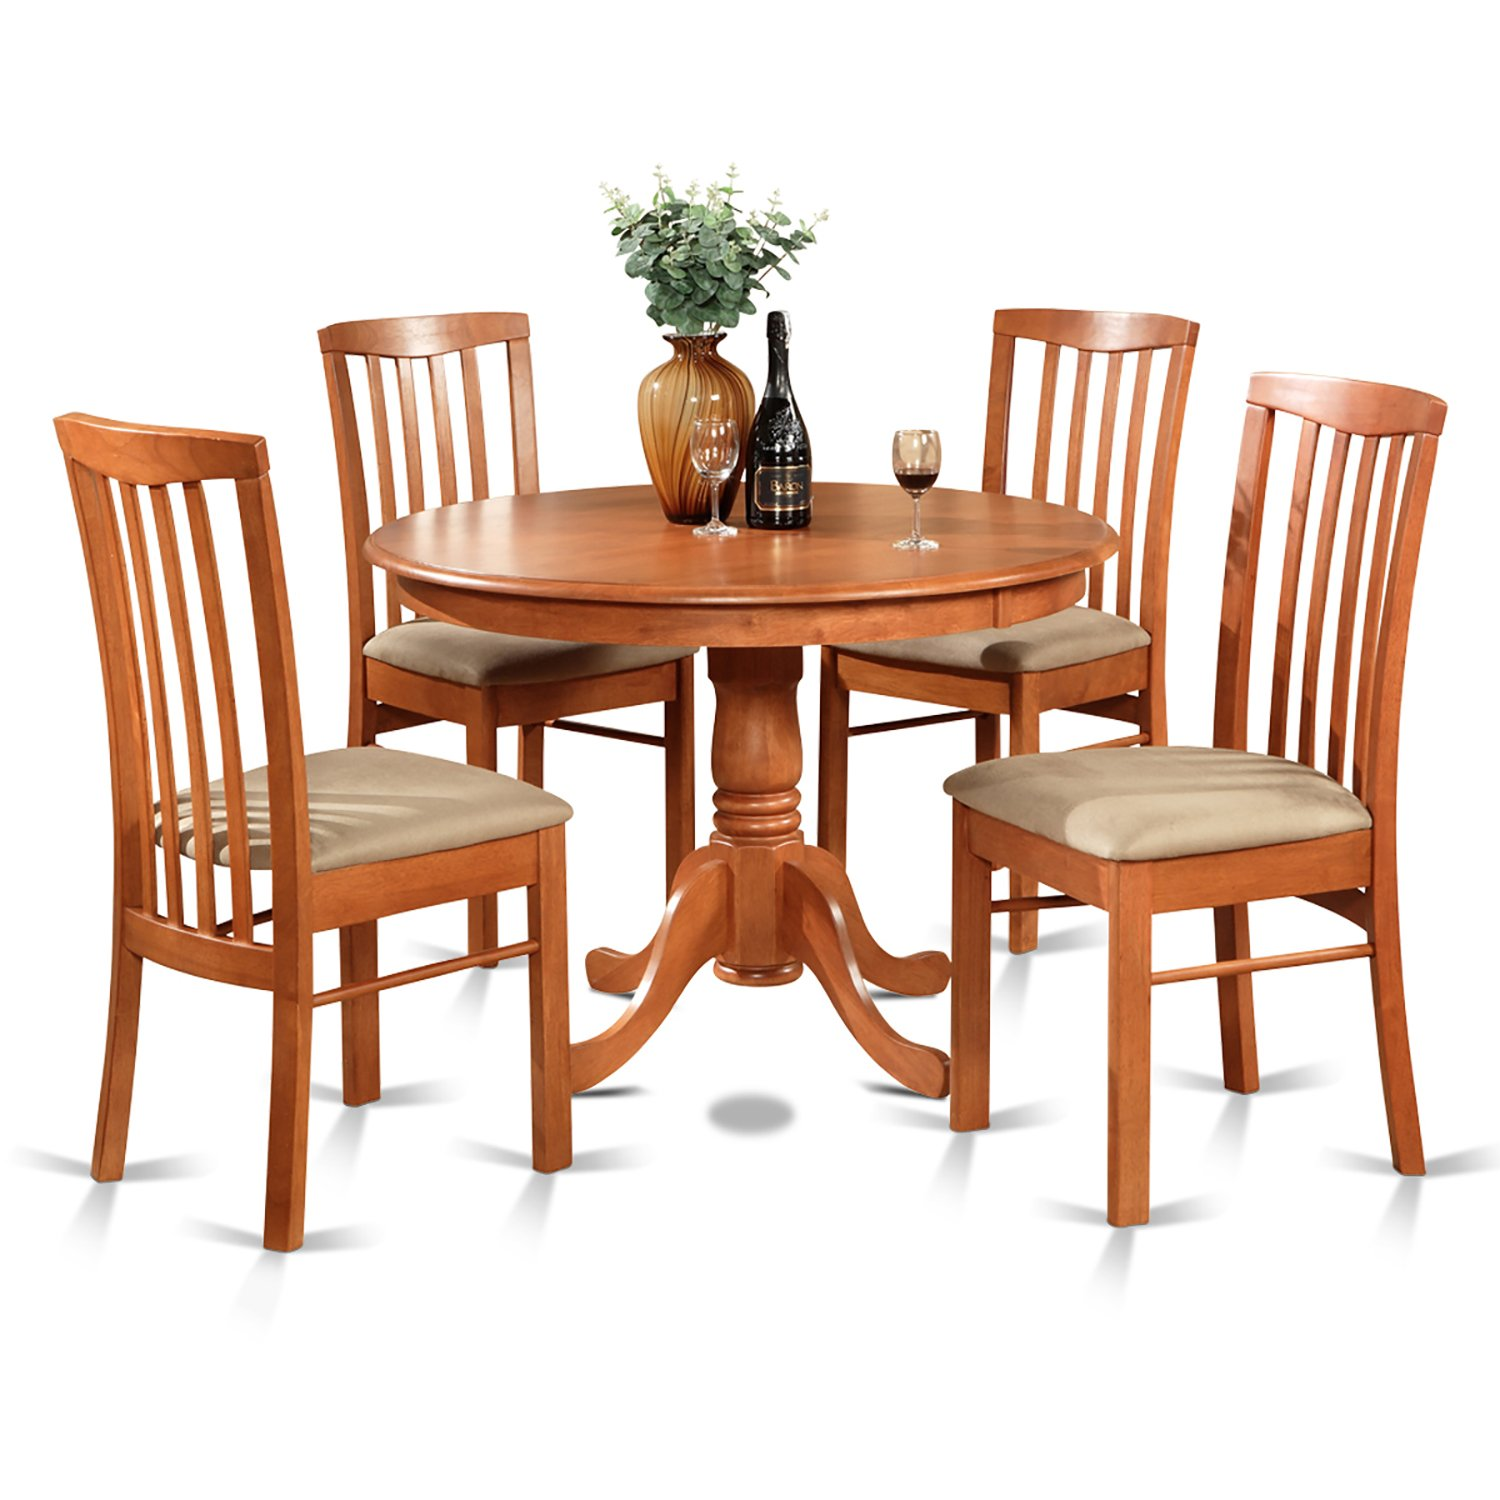 East West Furniture HART5-CHR-C 5-Piece Kitchen Table Set - Cherry Finish